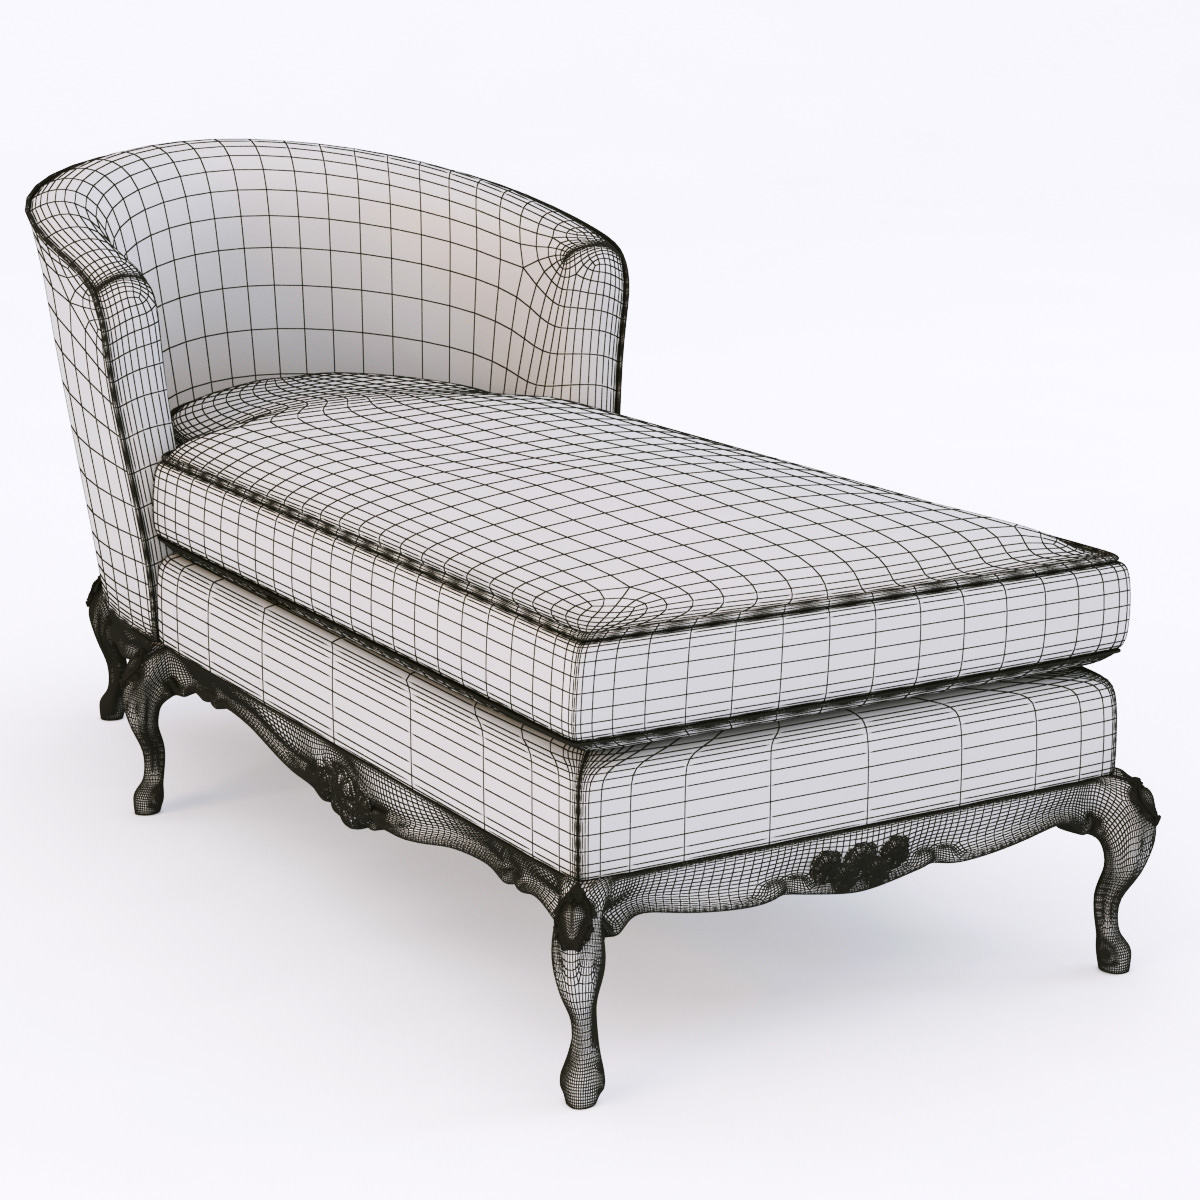 Ralph lauren cannes chaise 3d models for Chaise modele